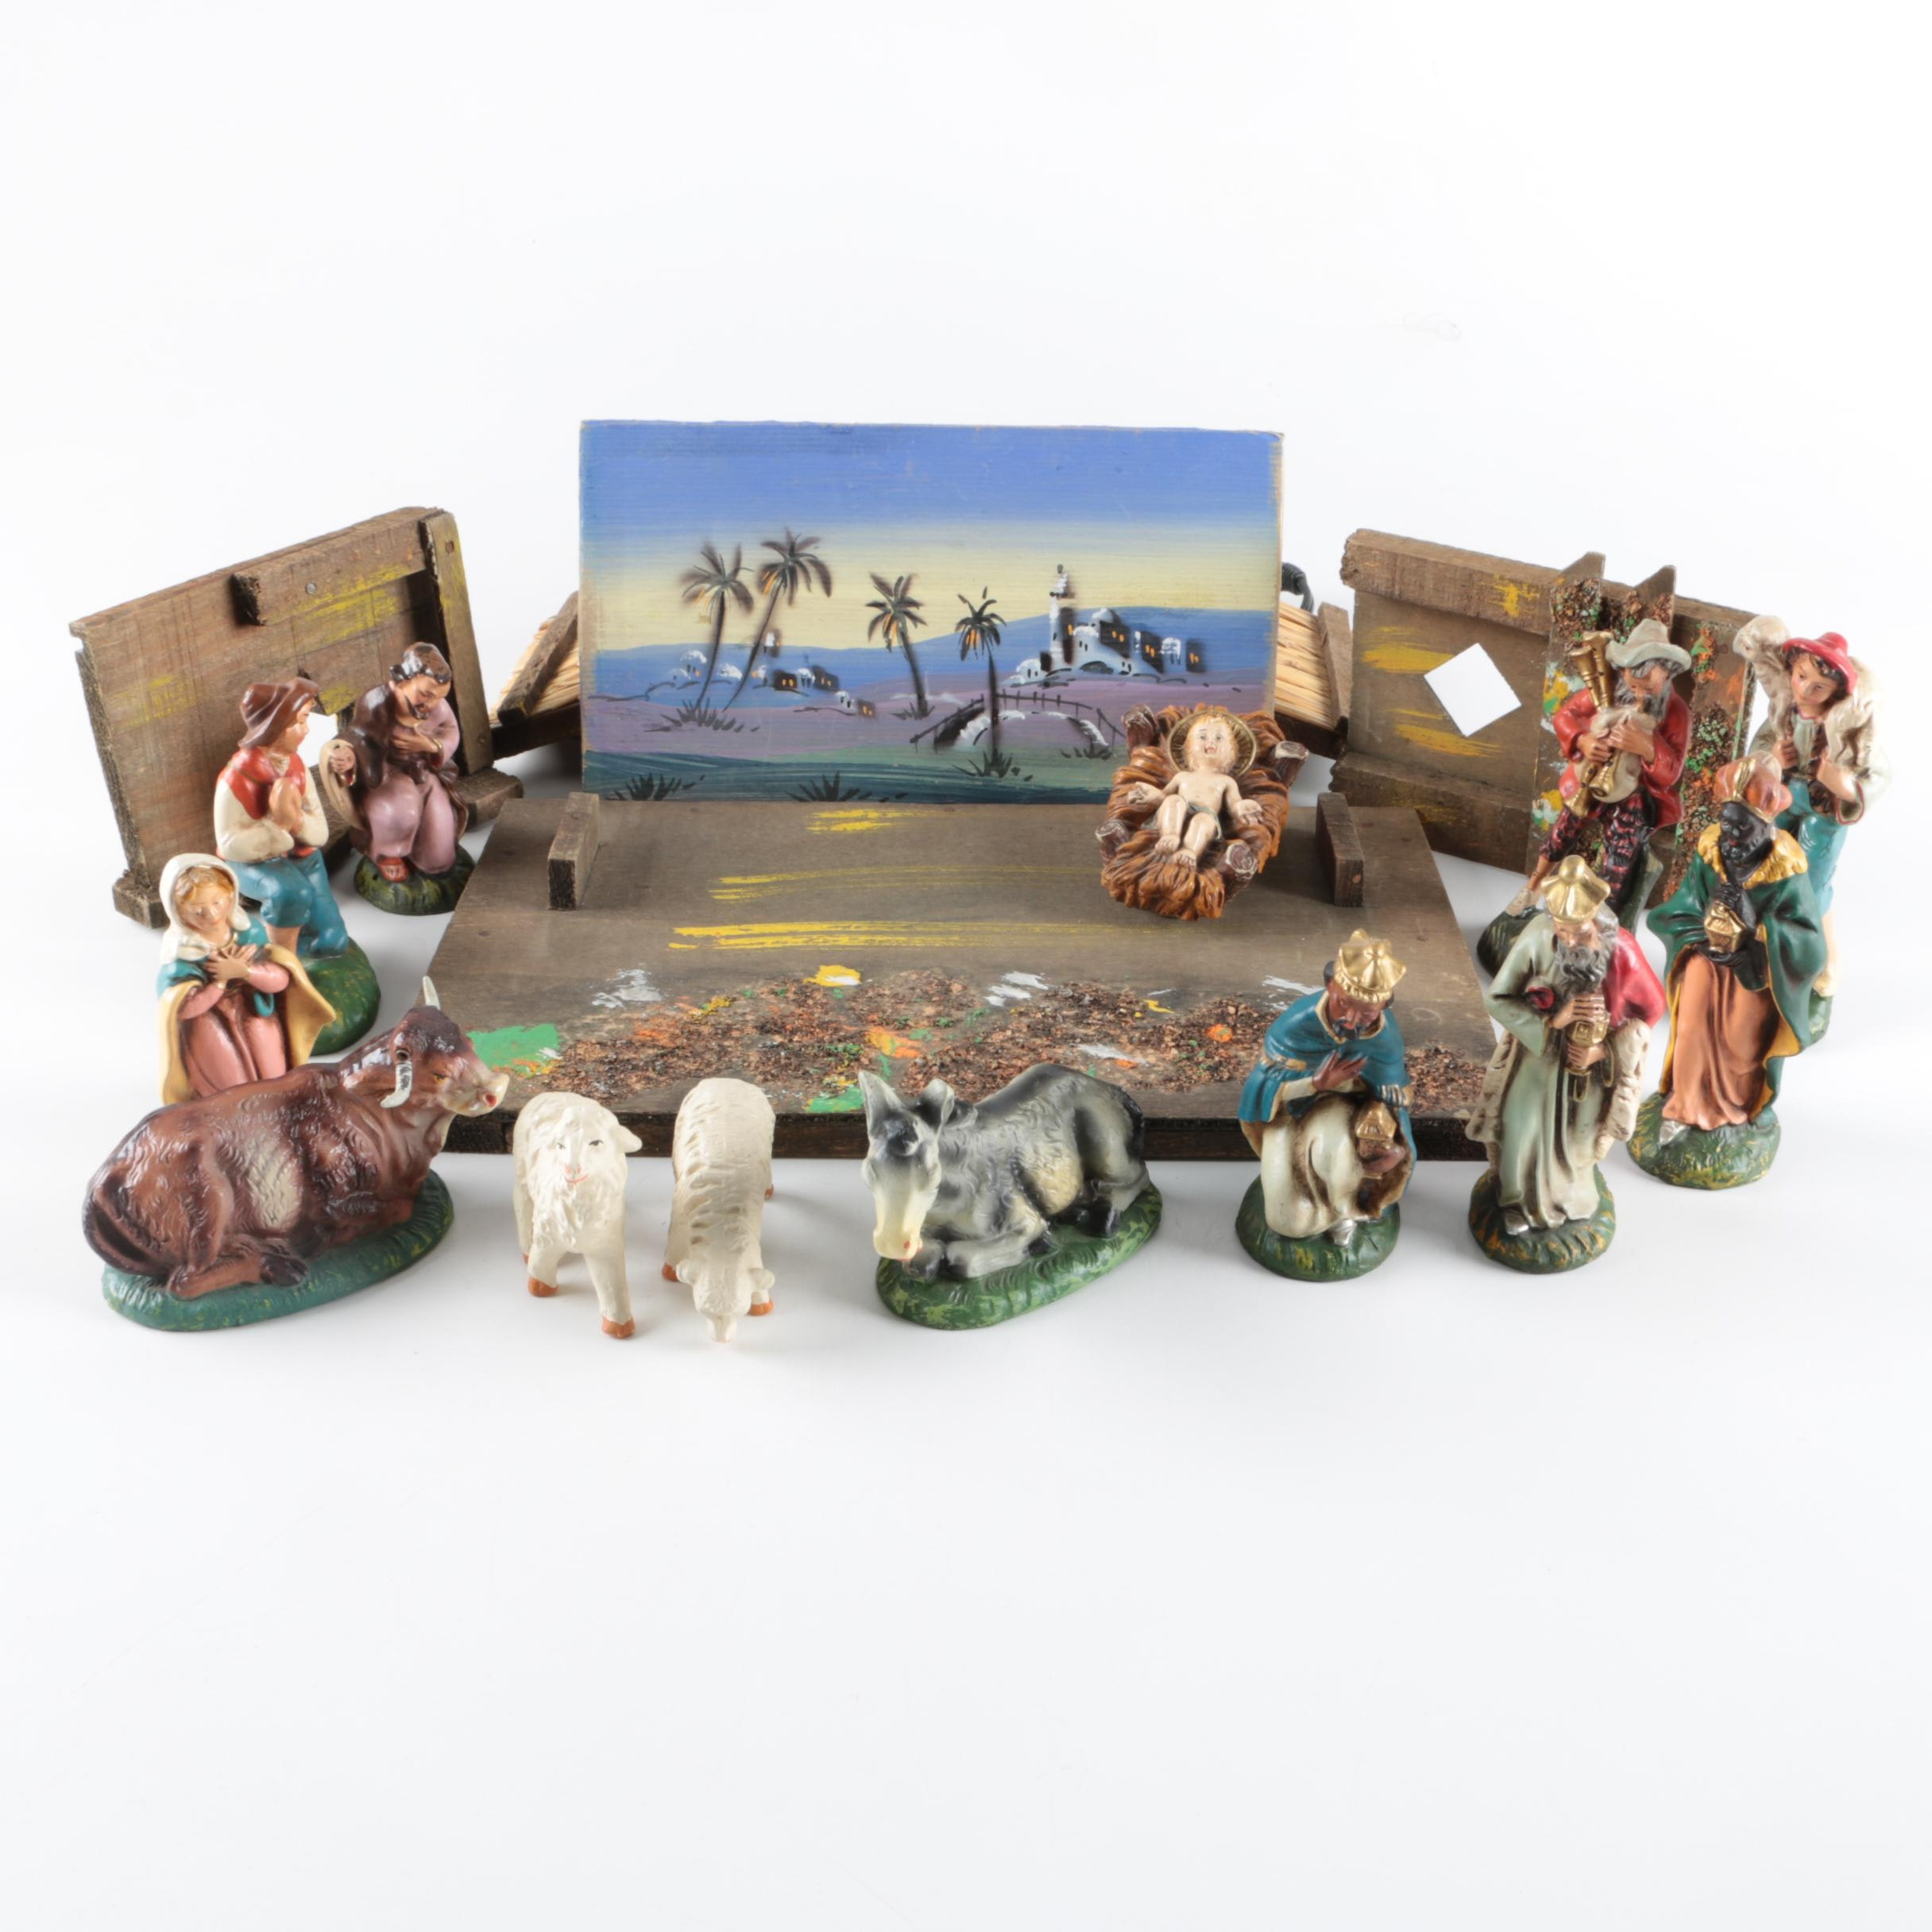 Illuminated Italian Nativity Scene